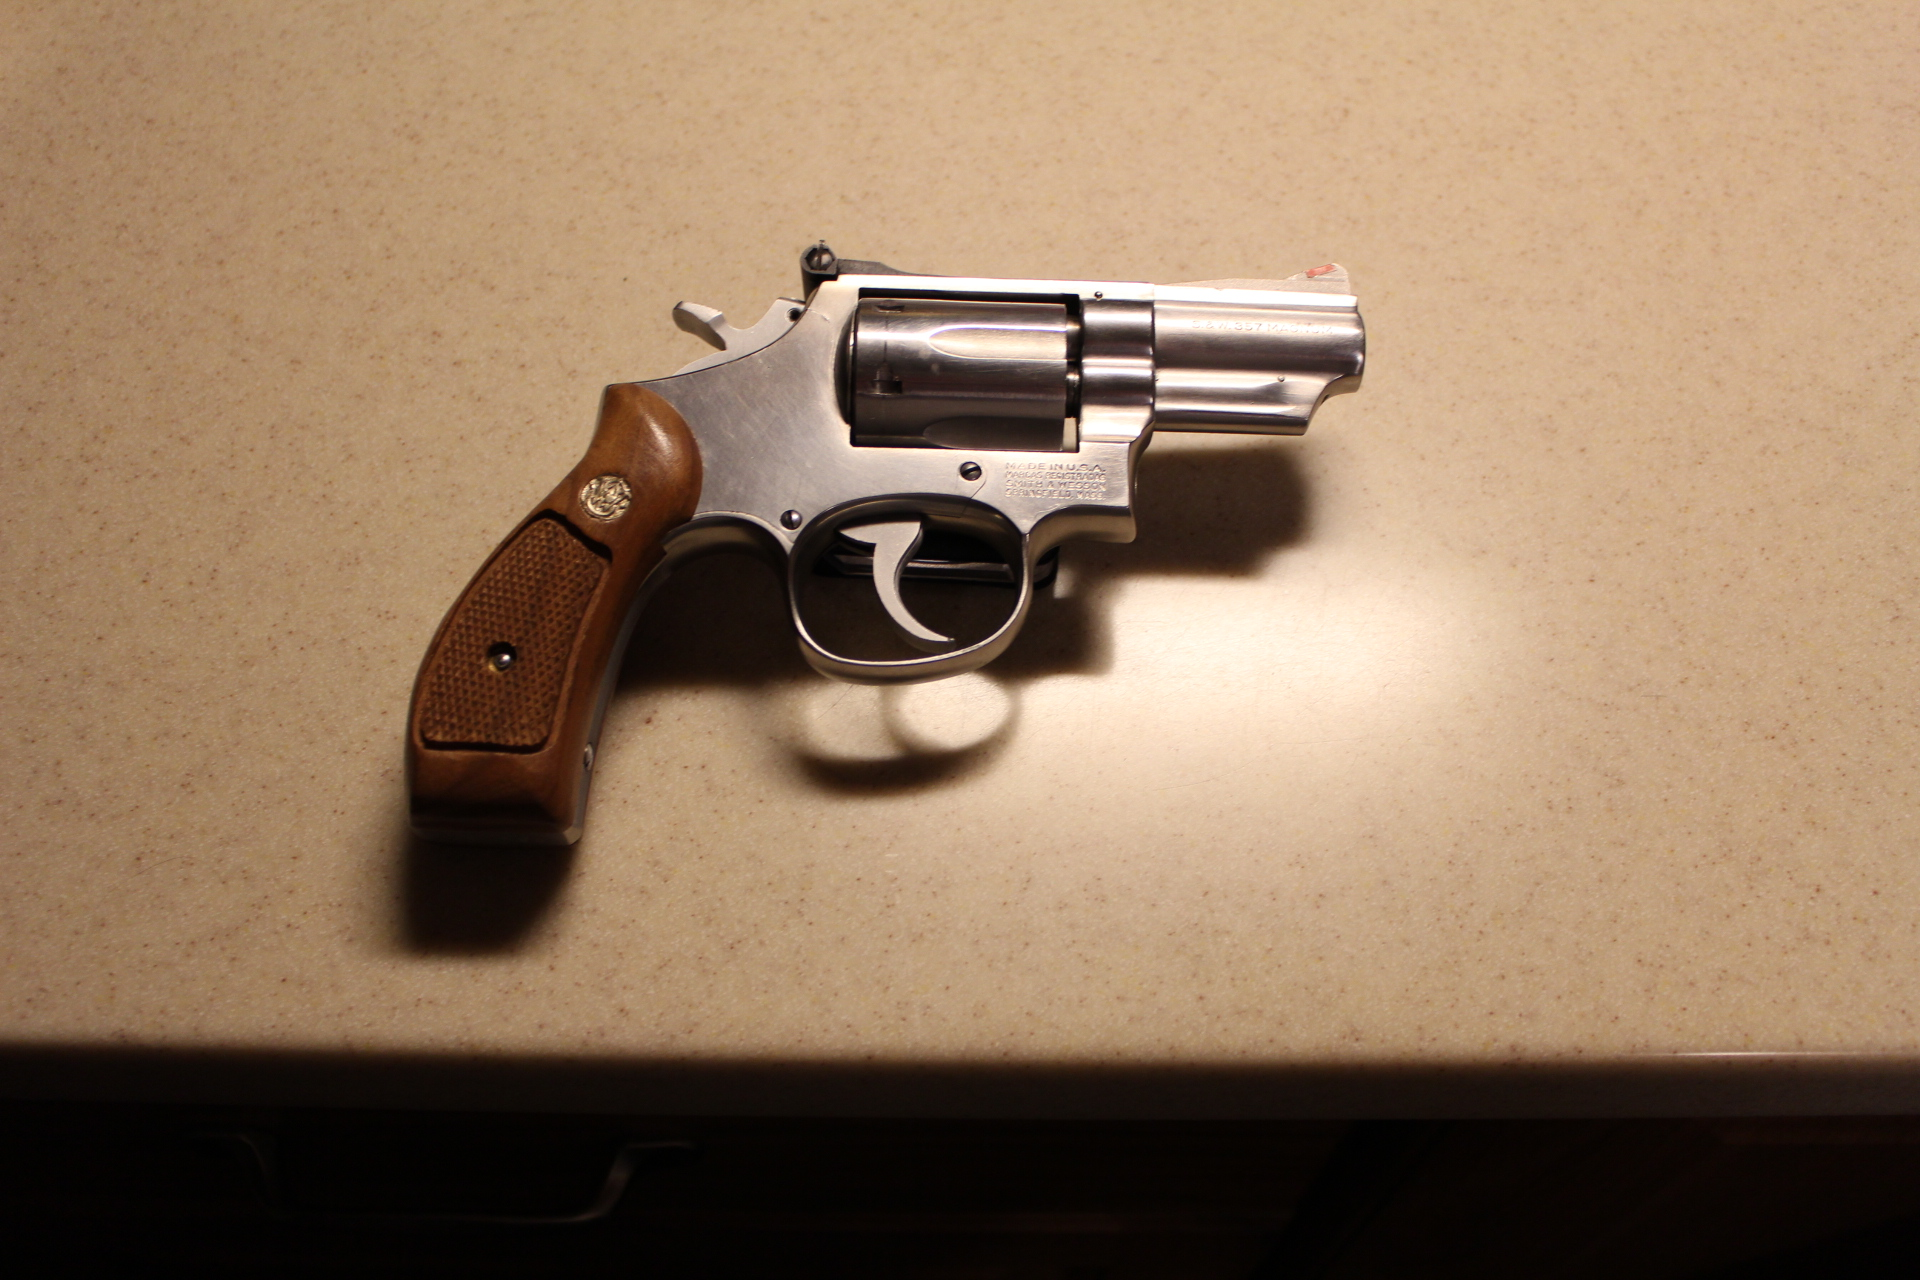 .357 magnum out of a snub nose - not worth it?-m66-1_r.jpg